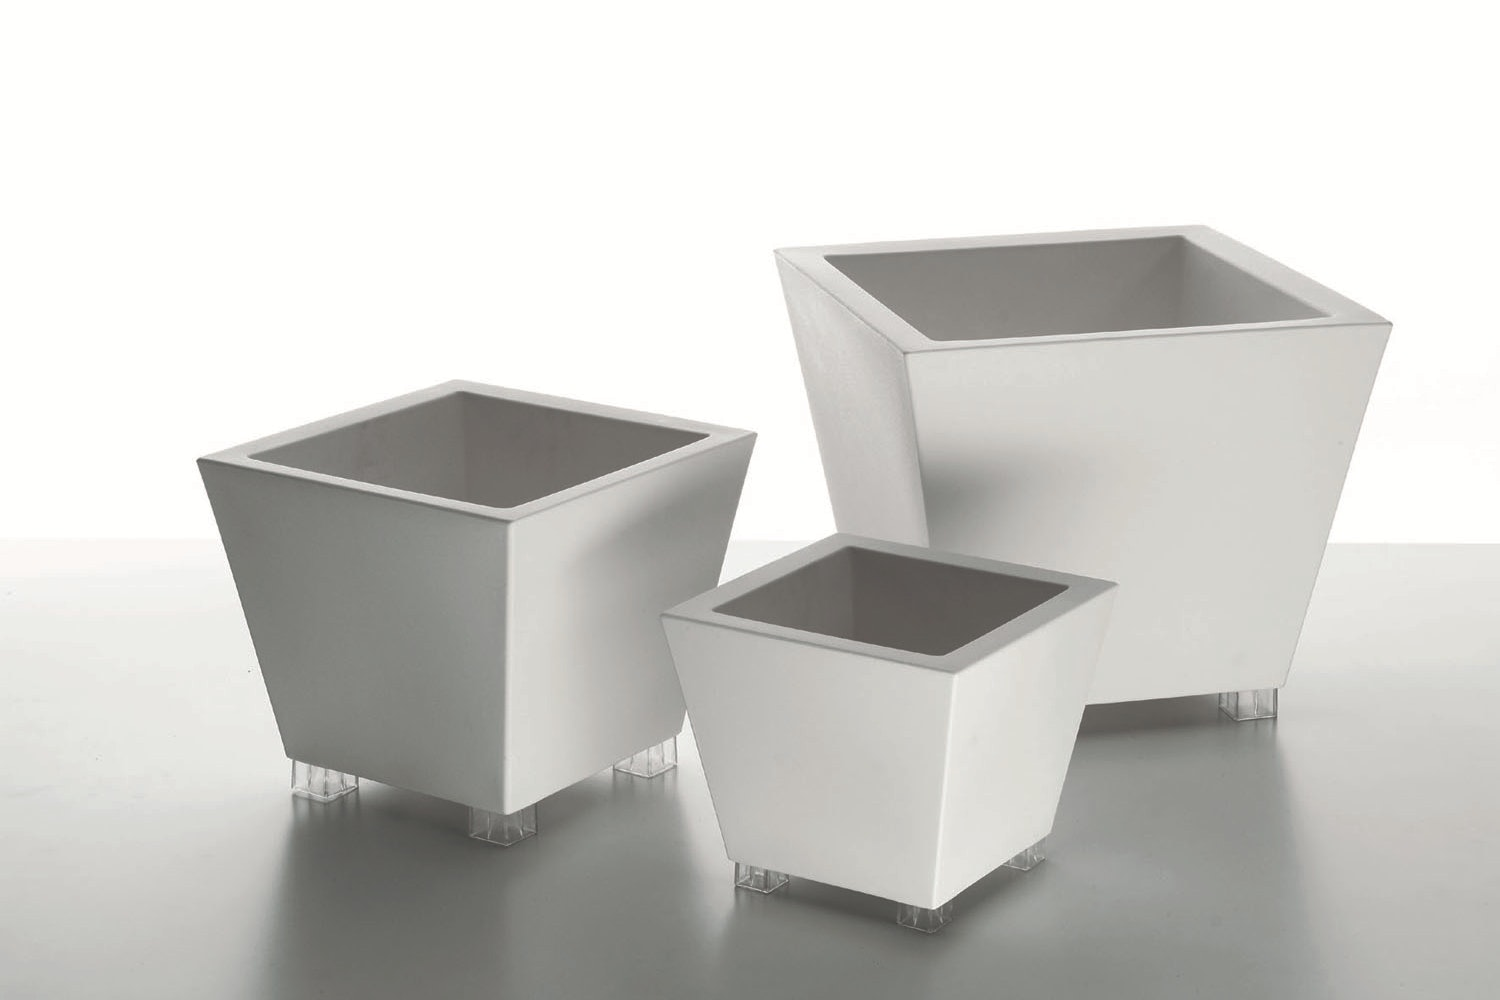 Kabin Pot Family by Luisa Bocchietto for Serralunga